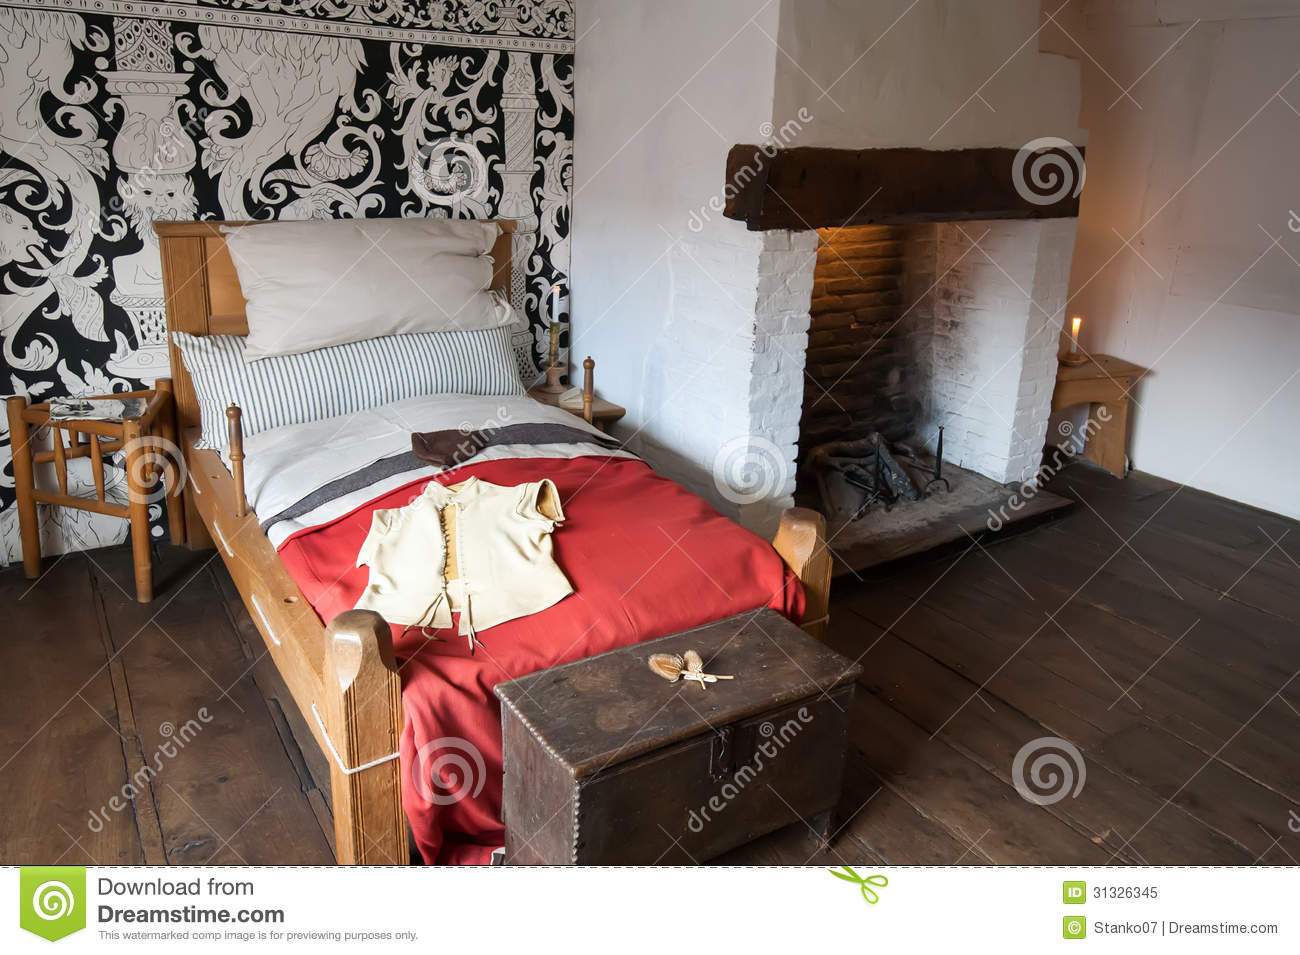 Ancient Bedroom Royalty Free Stock Photo - Image: 31326345